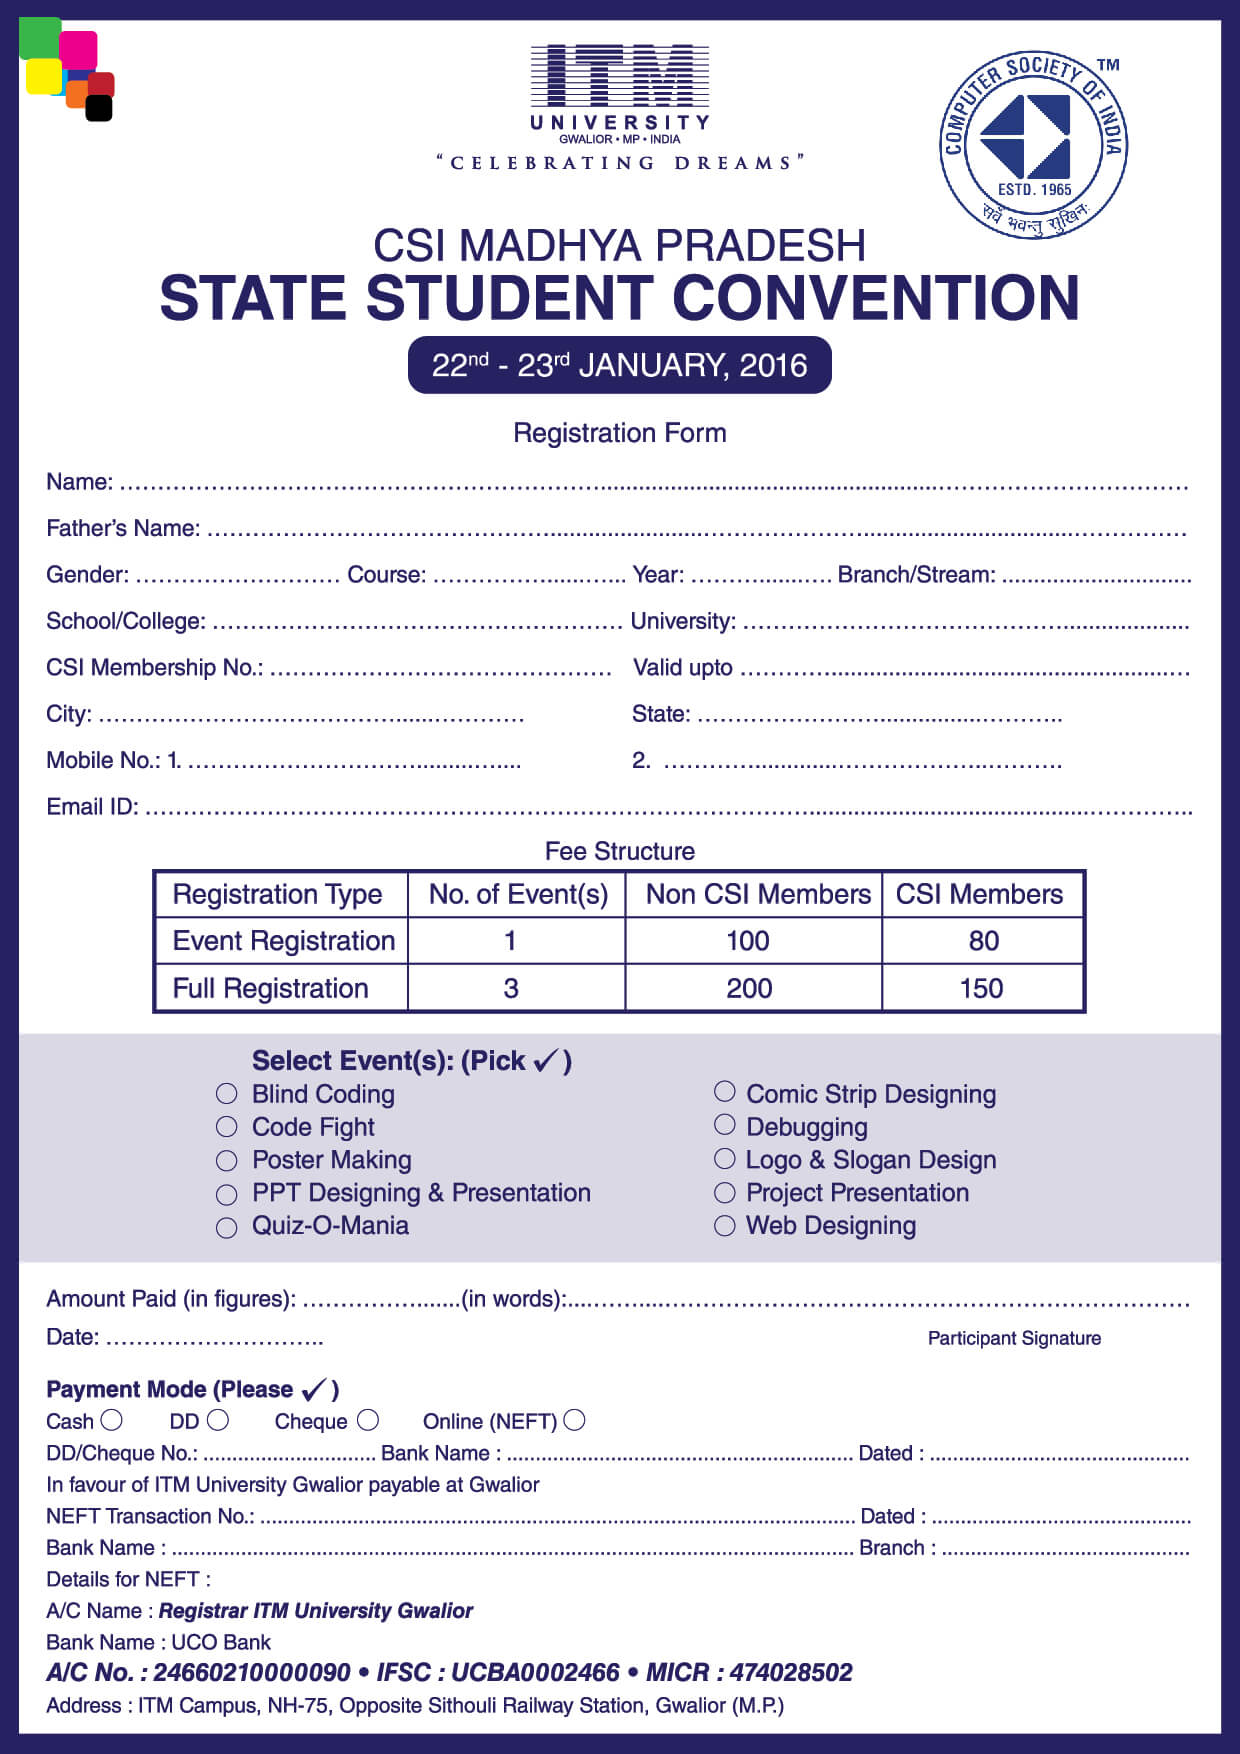 Registration Form.pdf Cc (1)